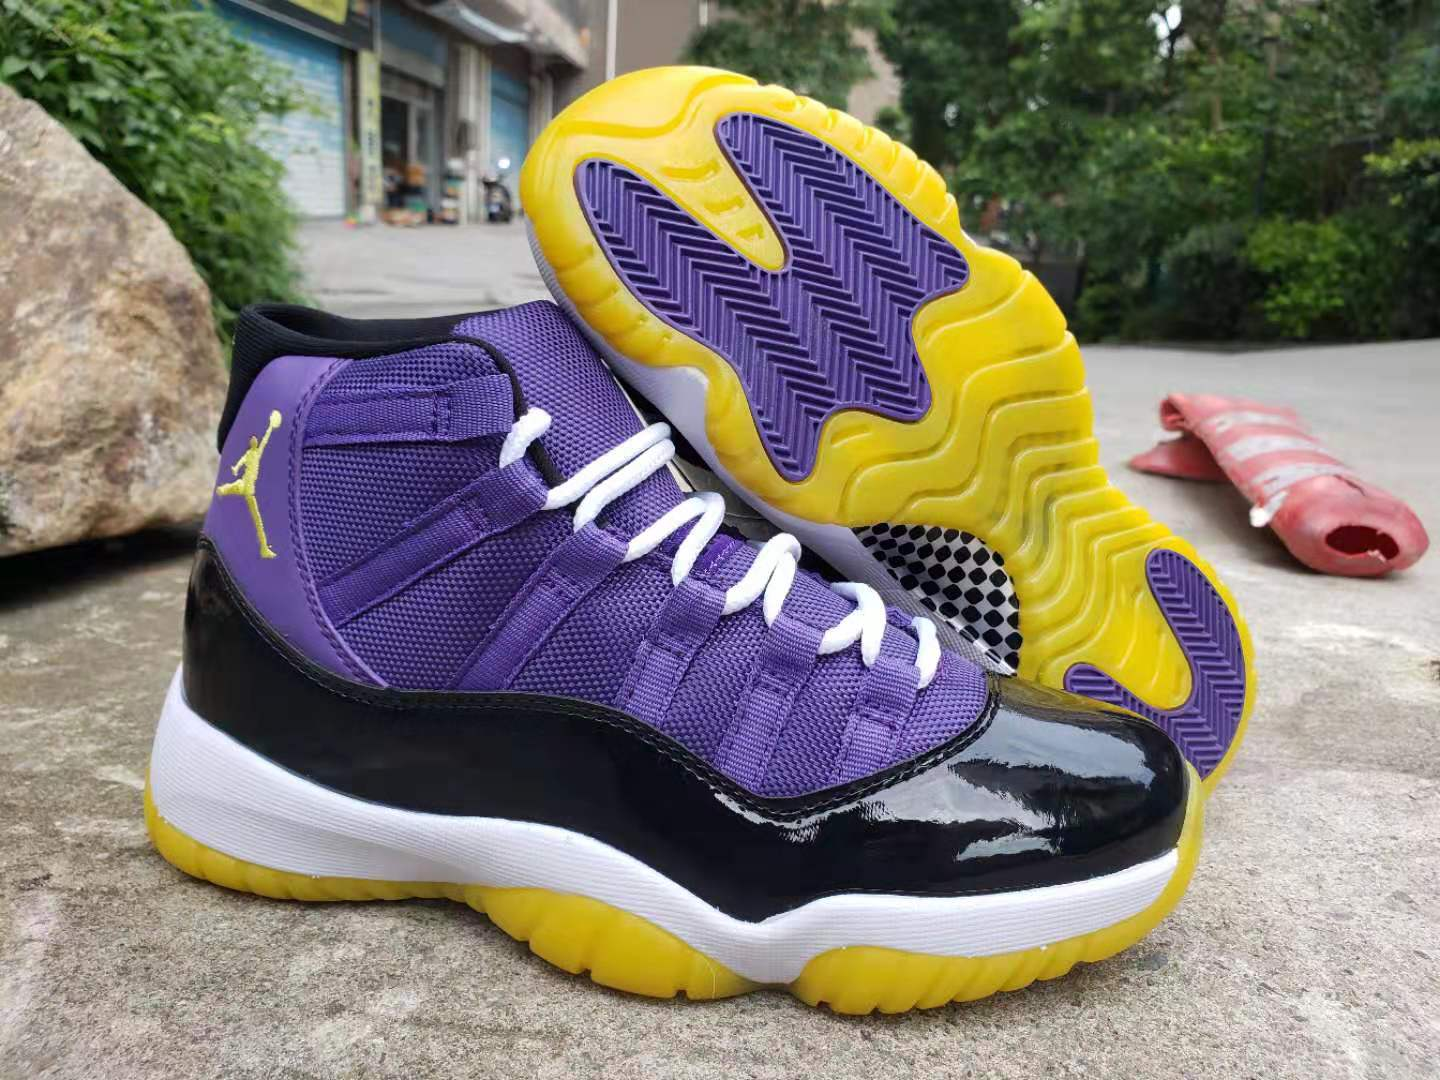 2019 Air Jordan Shoes 11 Purple Black Yellow